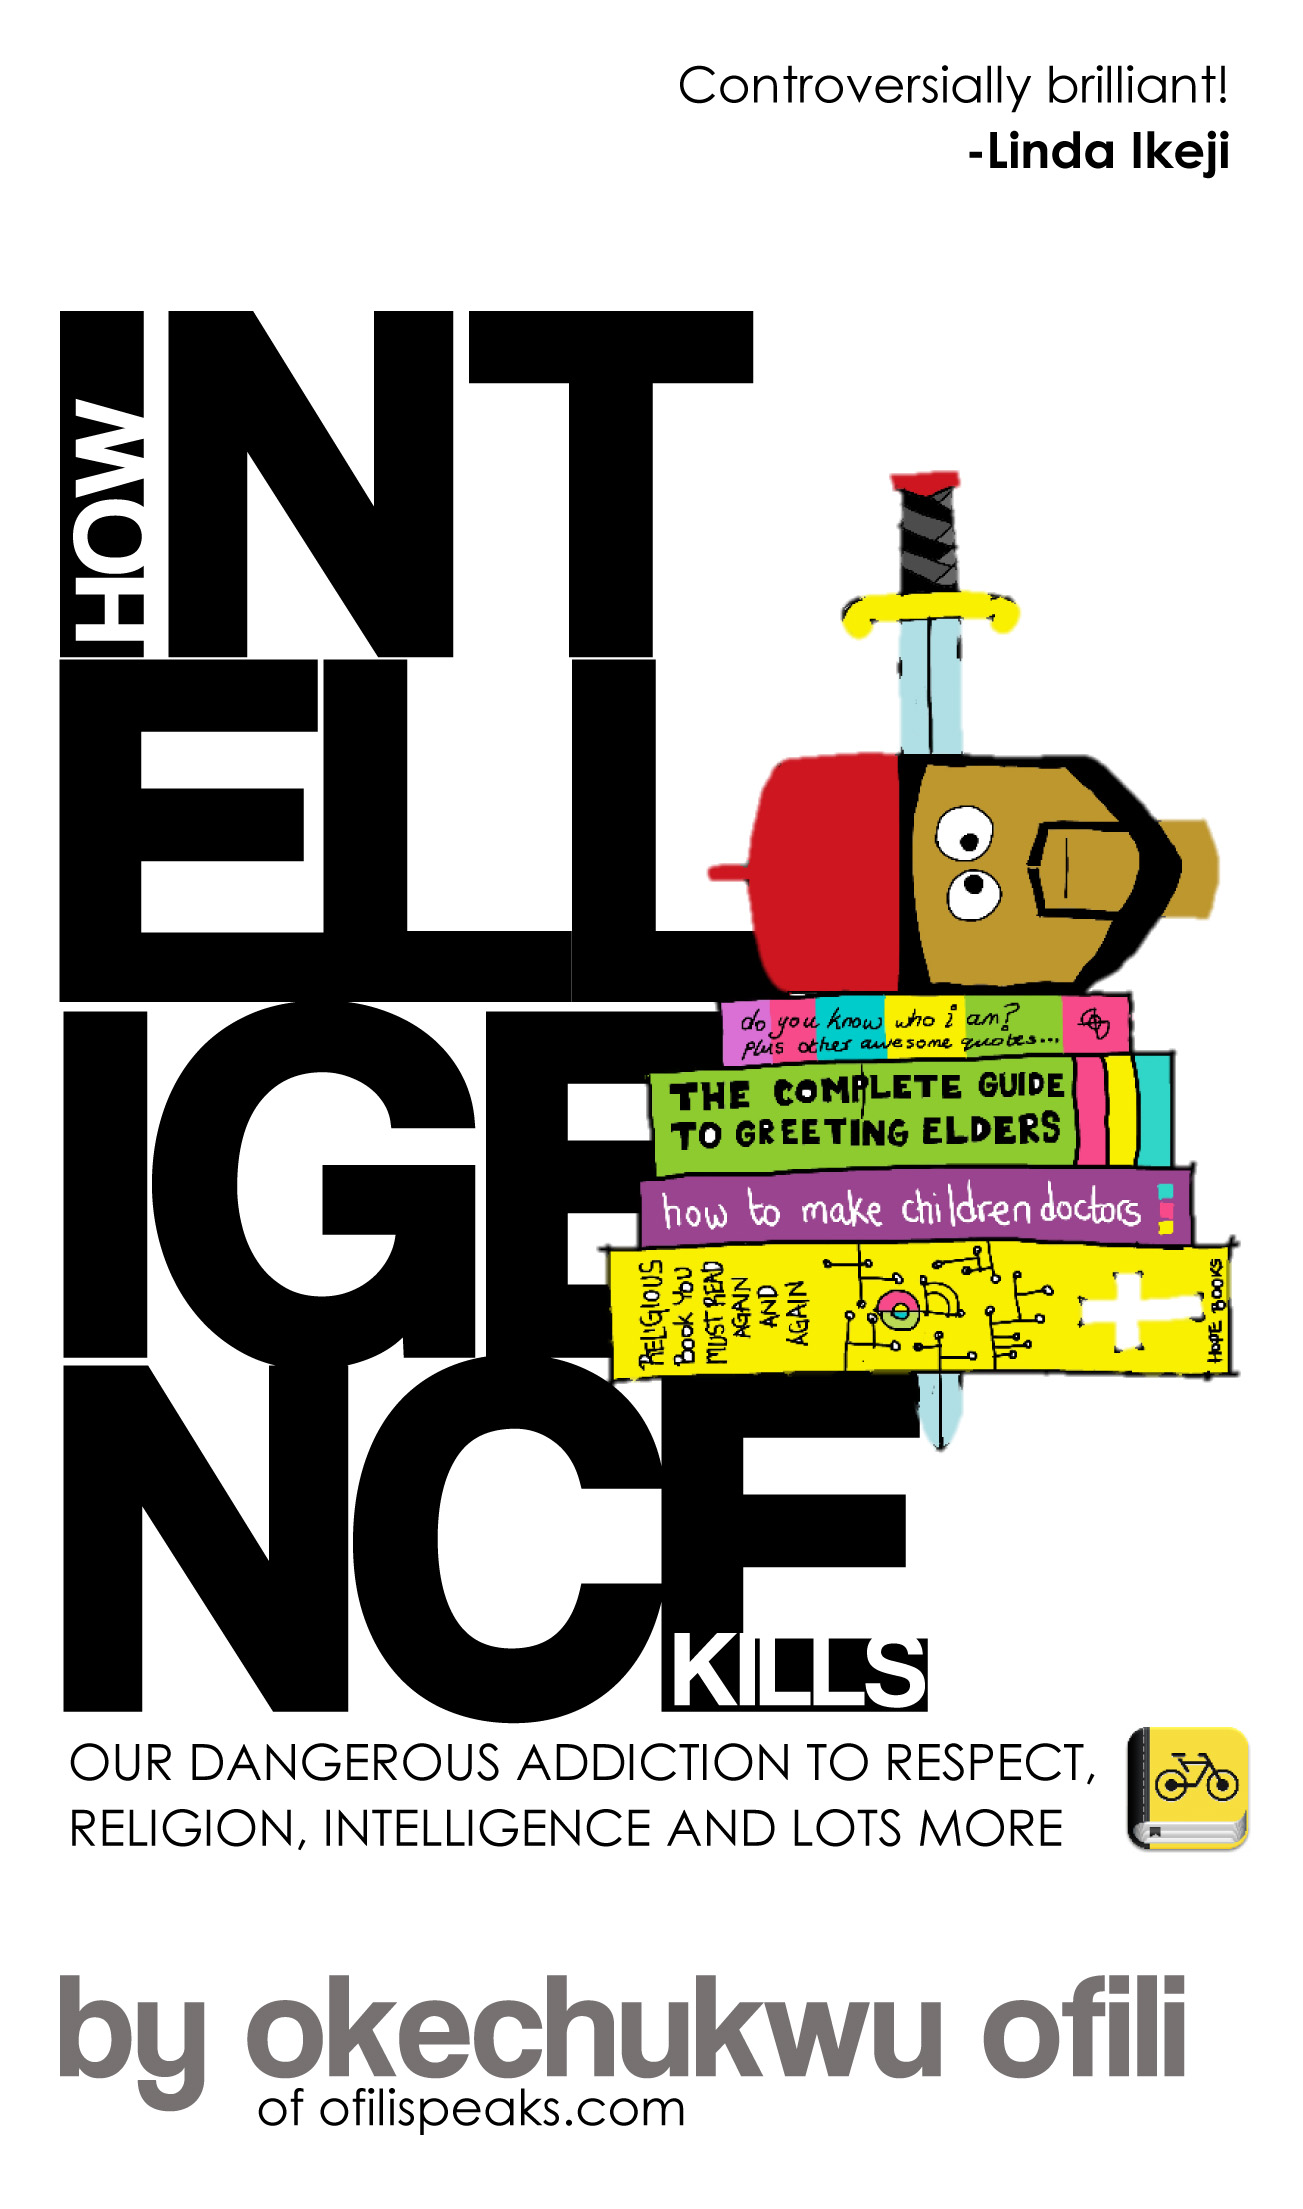 Konga: How Intelligence Kills